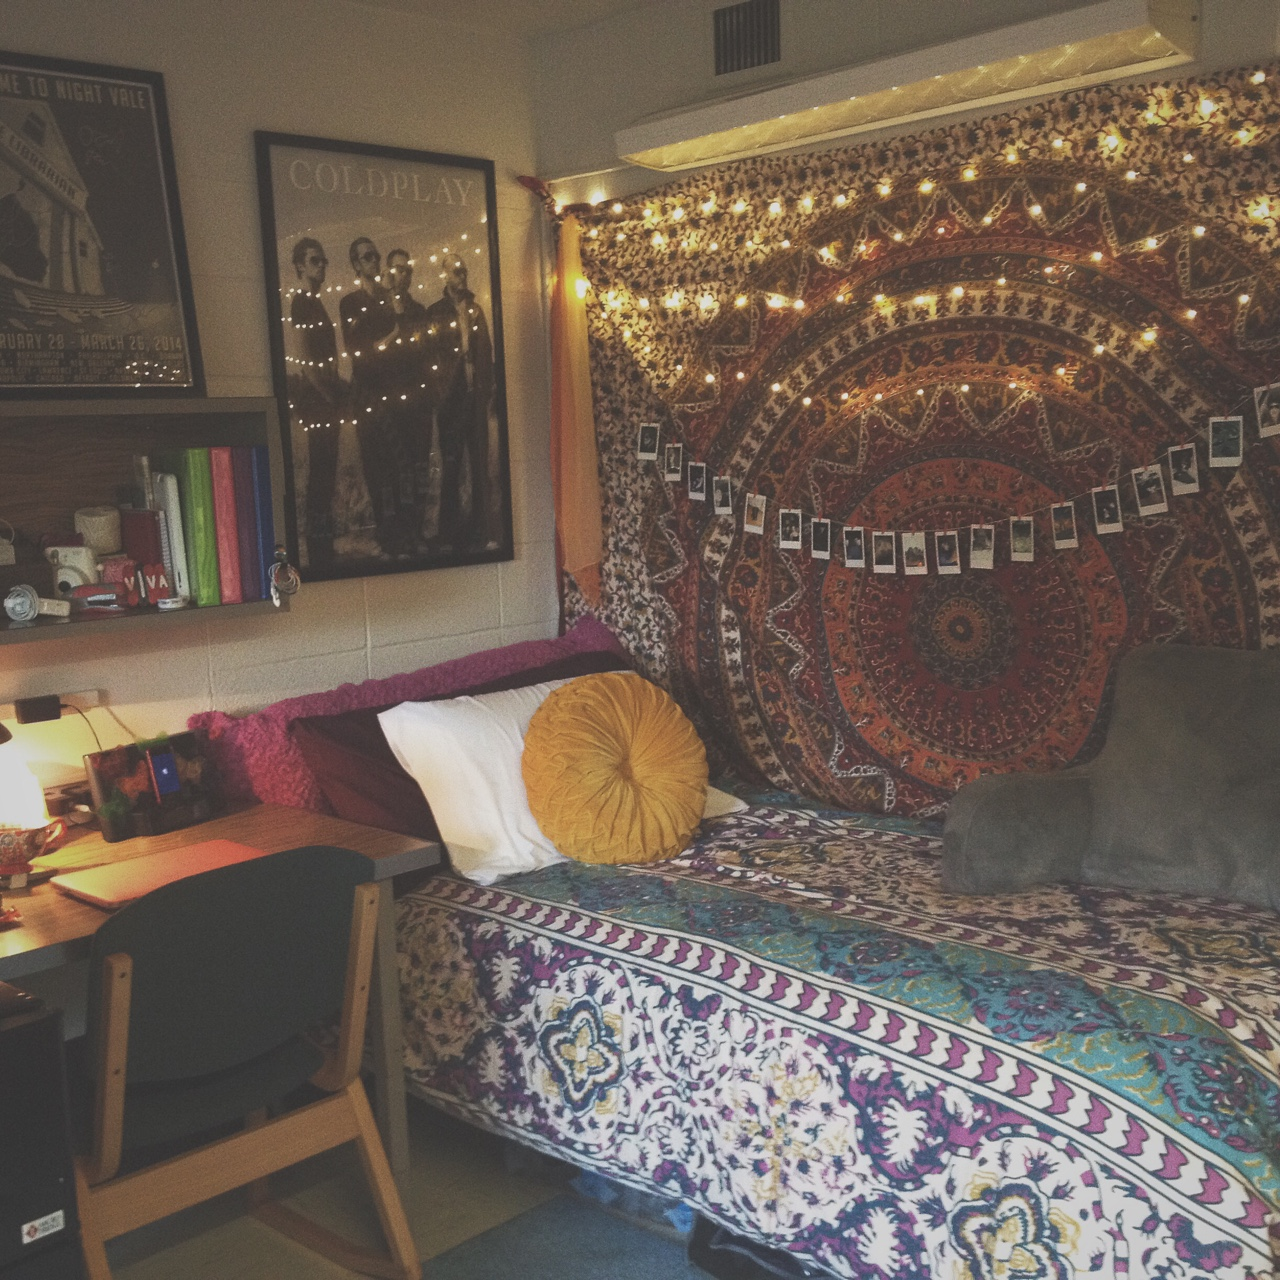 Dorm decorating ideas by style society19 - Room decor ideas pinterest ...